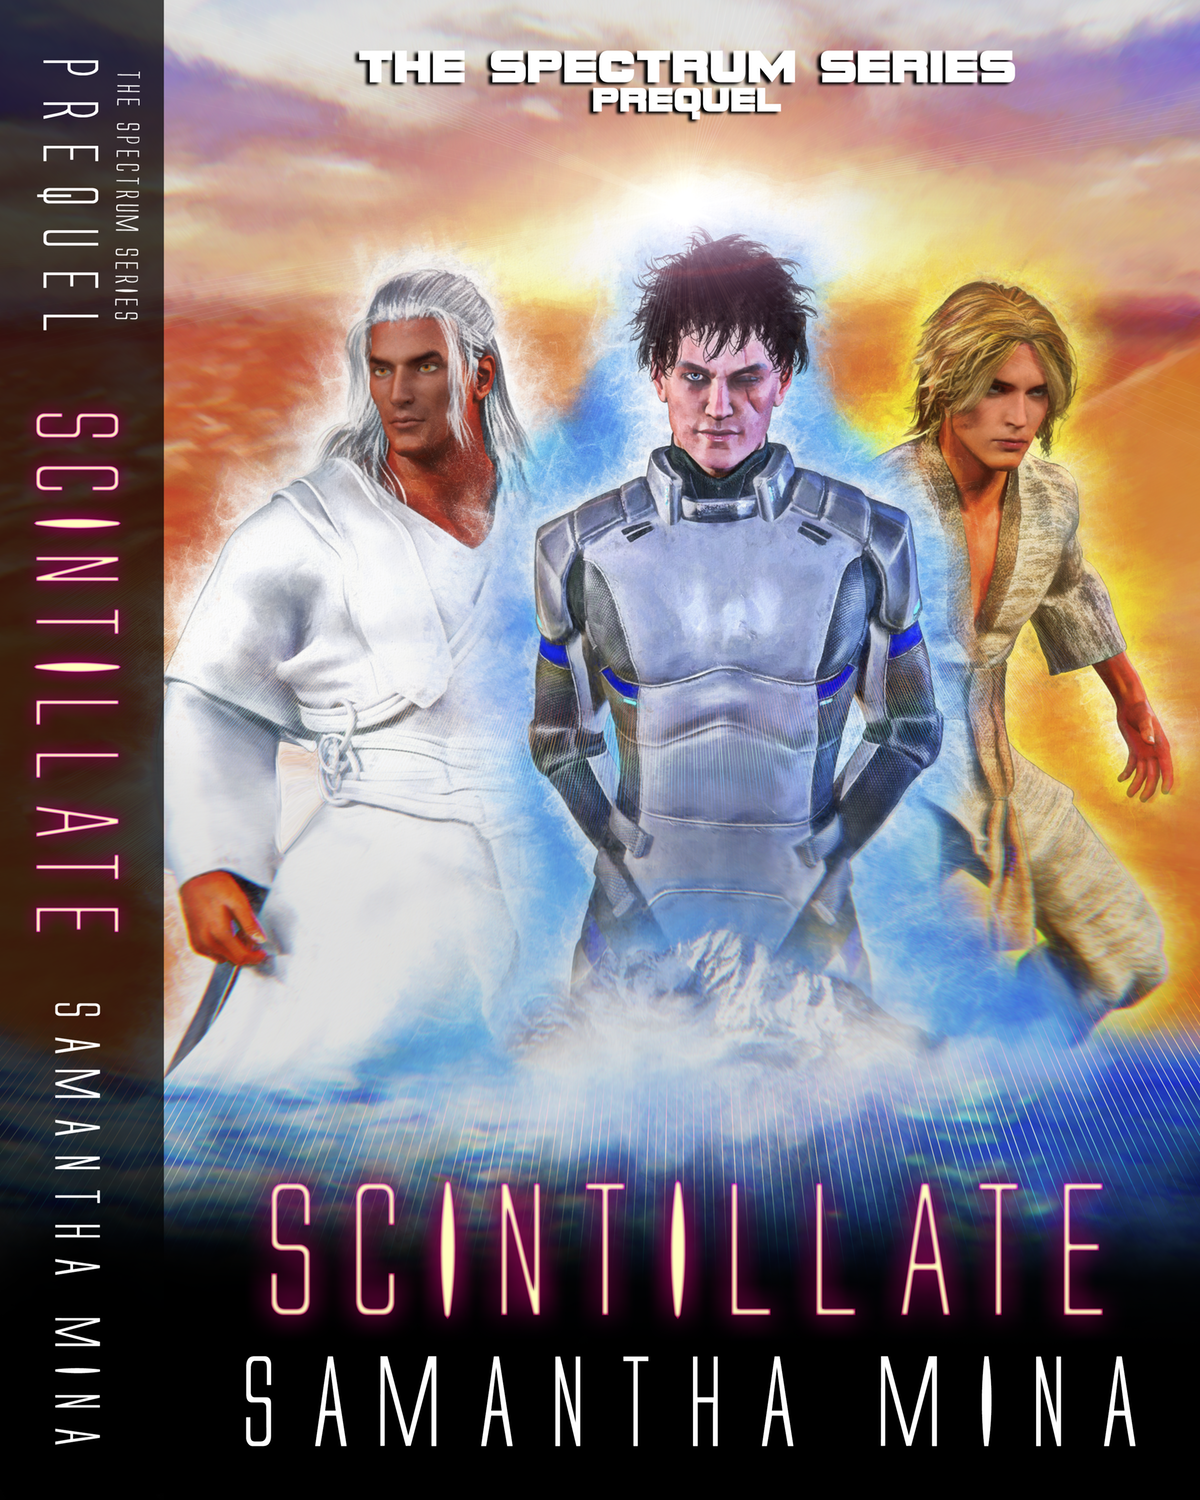 Cover and Spine for the Prequel to the Spectrum Series: SCINTILLATE